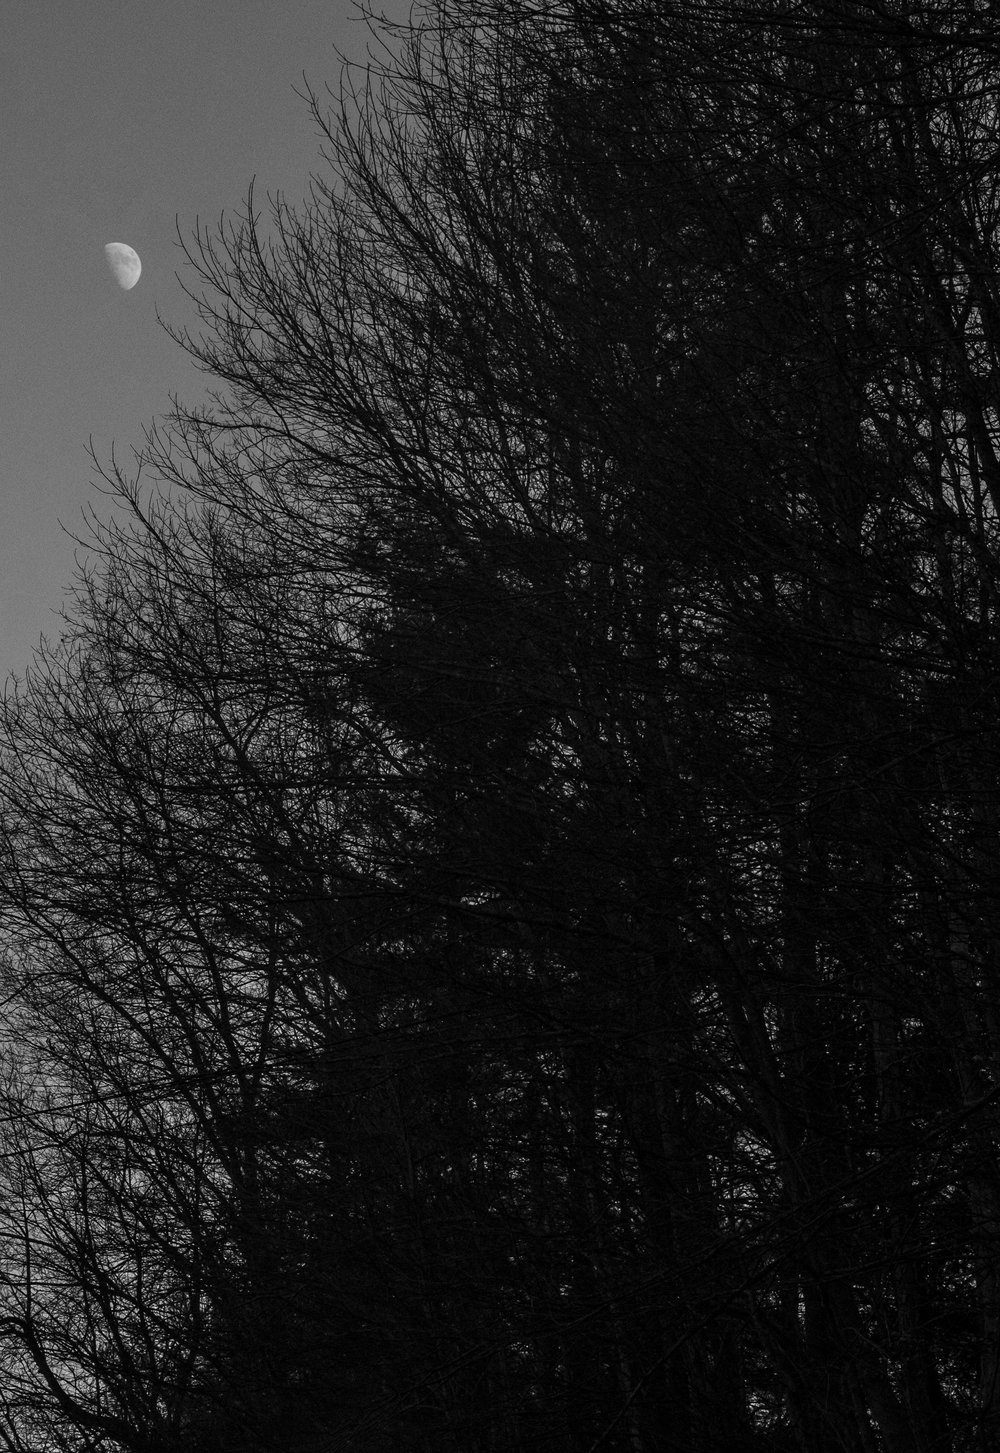 The moon flickers through the trees on the road between Red Onion State Prison and Wallens Ridge State Prison. The supermax prisons sit 31 miles apart near the heart of Appalachia coal country.